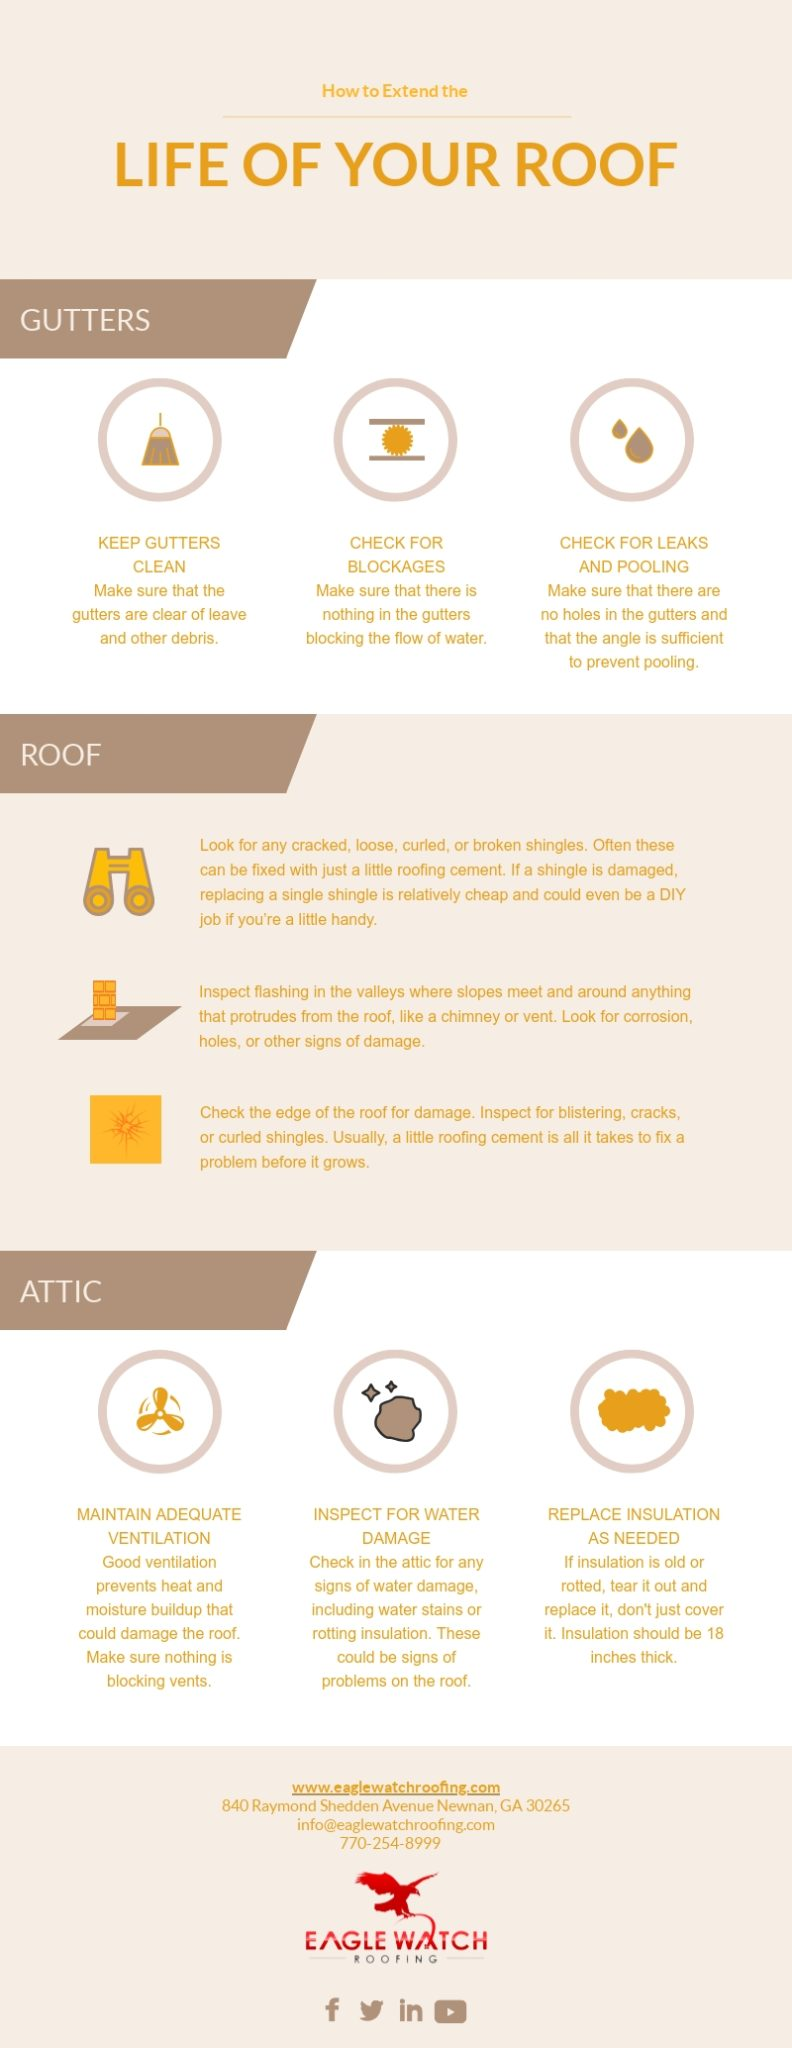 How to Extend the Life of Your Roof [infographic]